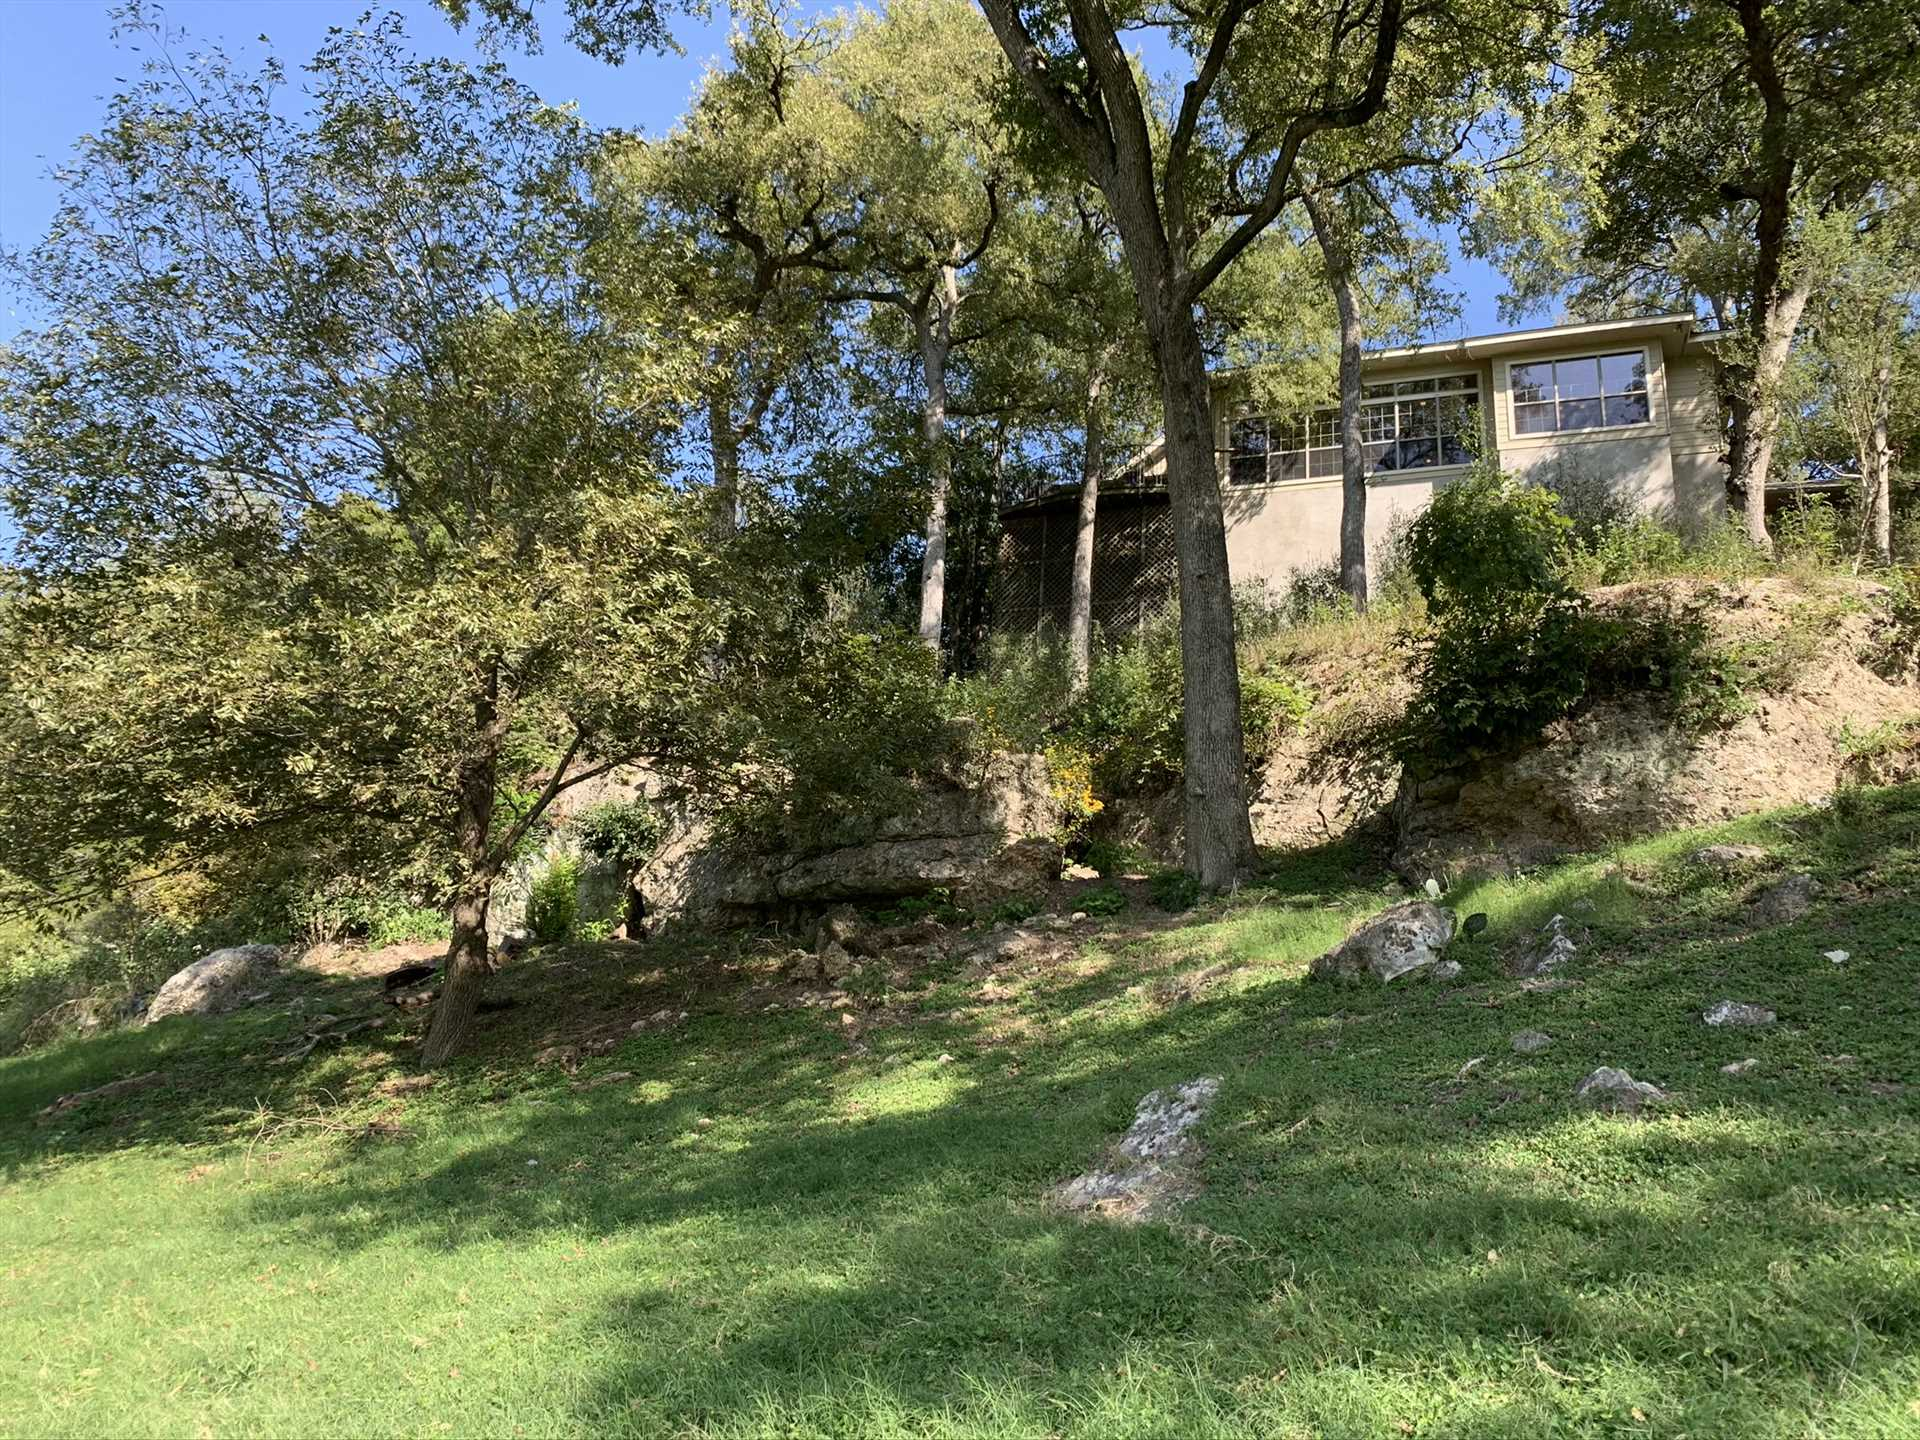 This is the Retreat as seen from the banks of the Guadalupe. Now, reverse that, and imagine the river view you'll have from the top of the cliff!